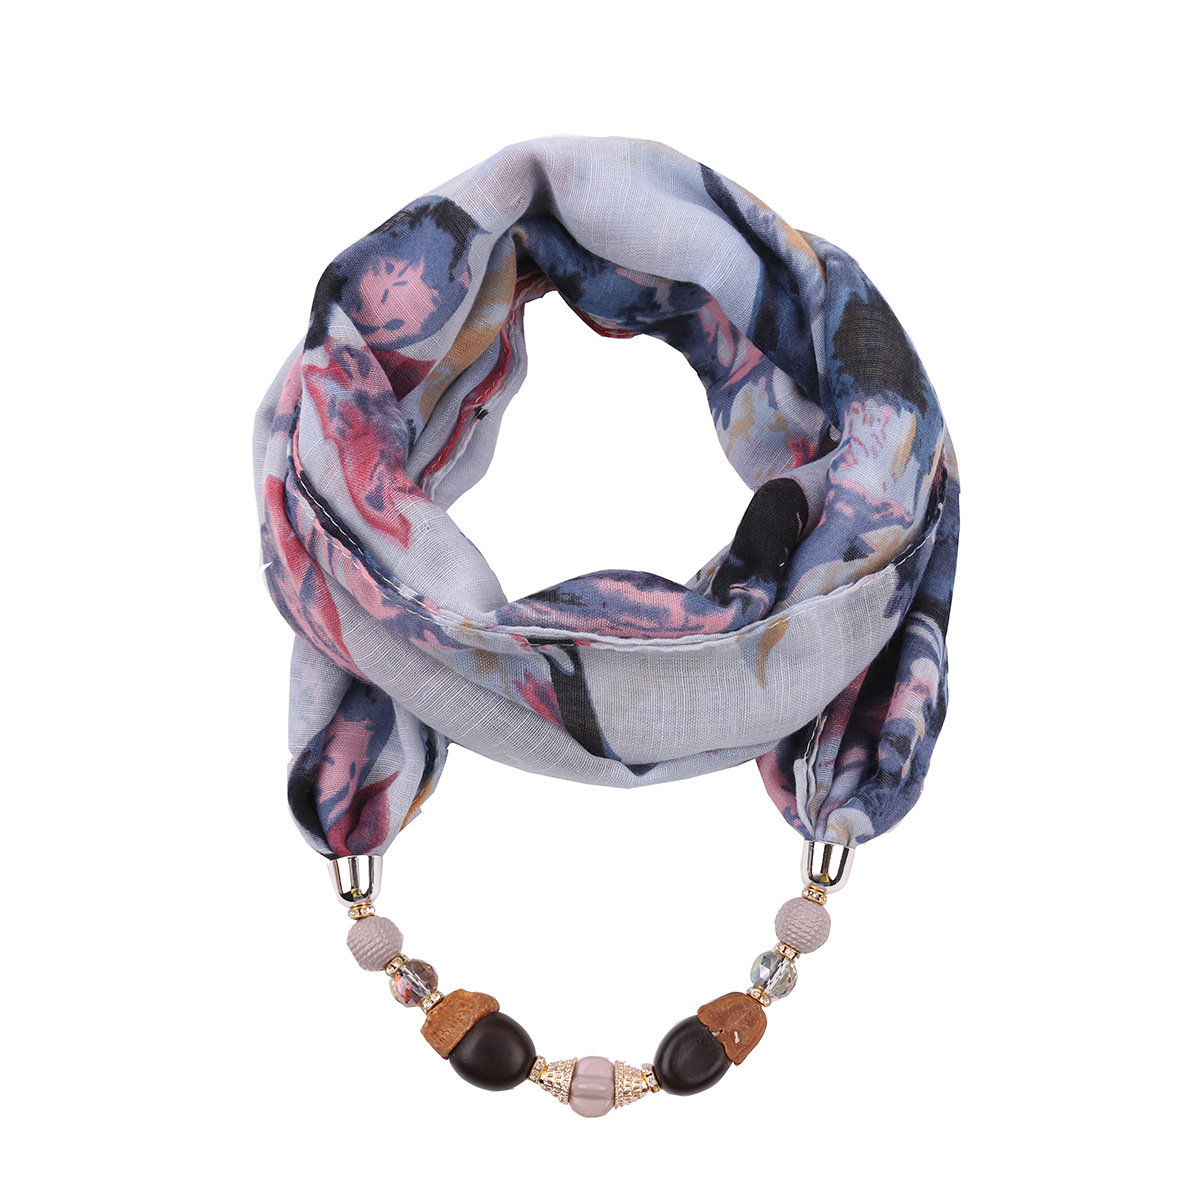 Jewelry scarf women viscose shawls capes ring necklace scarfs accessories wraps head cover stoles fashion